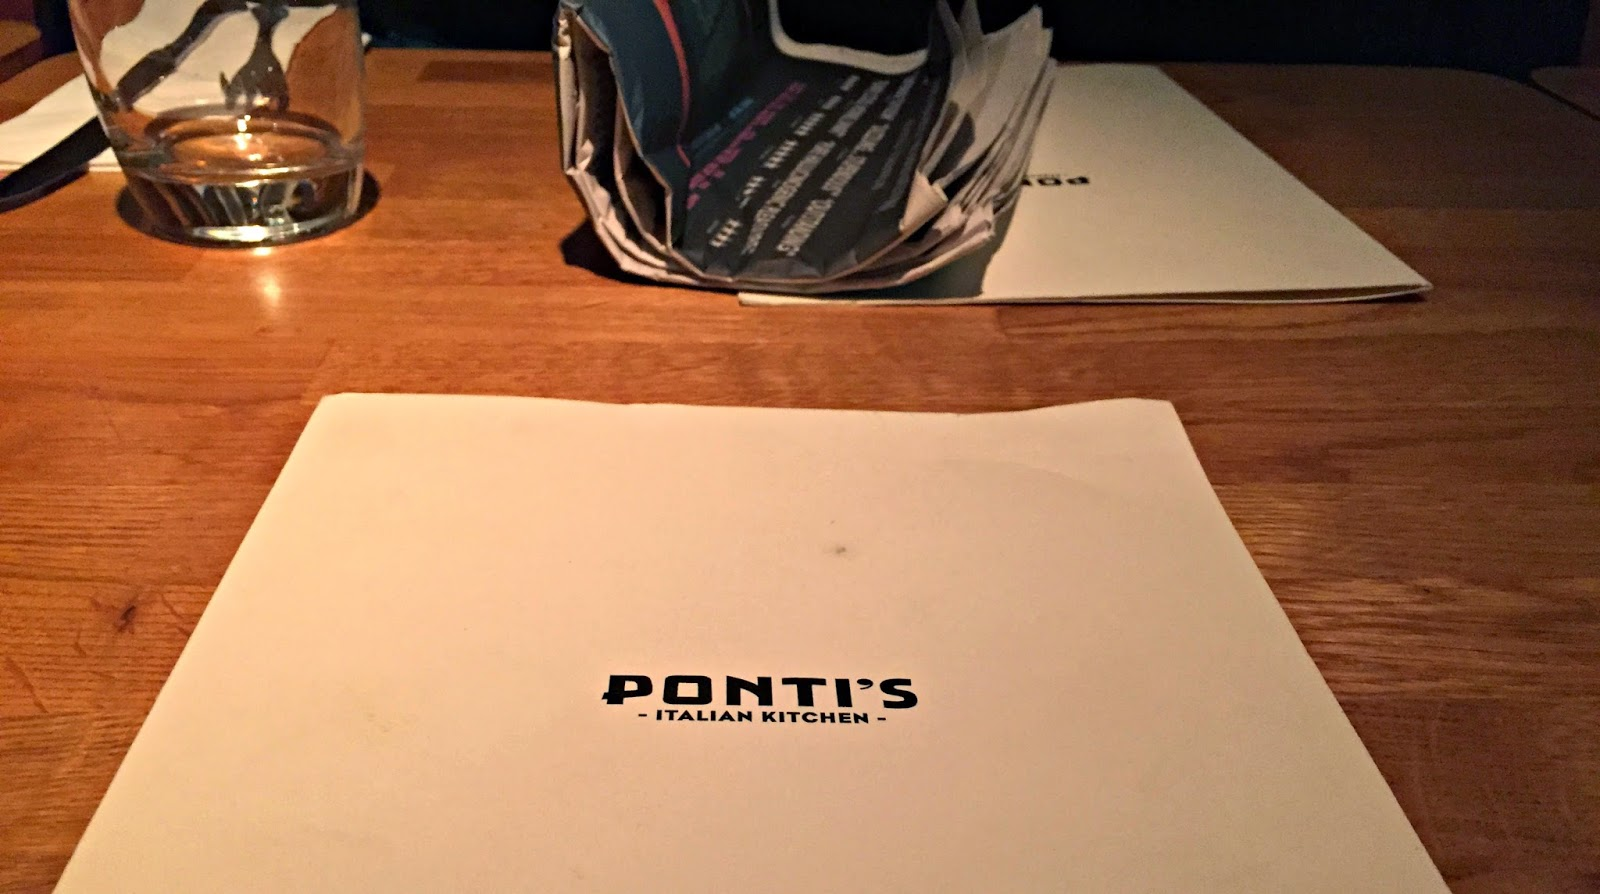 Ponti's Italian Kitchen